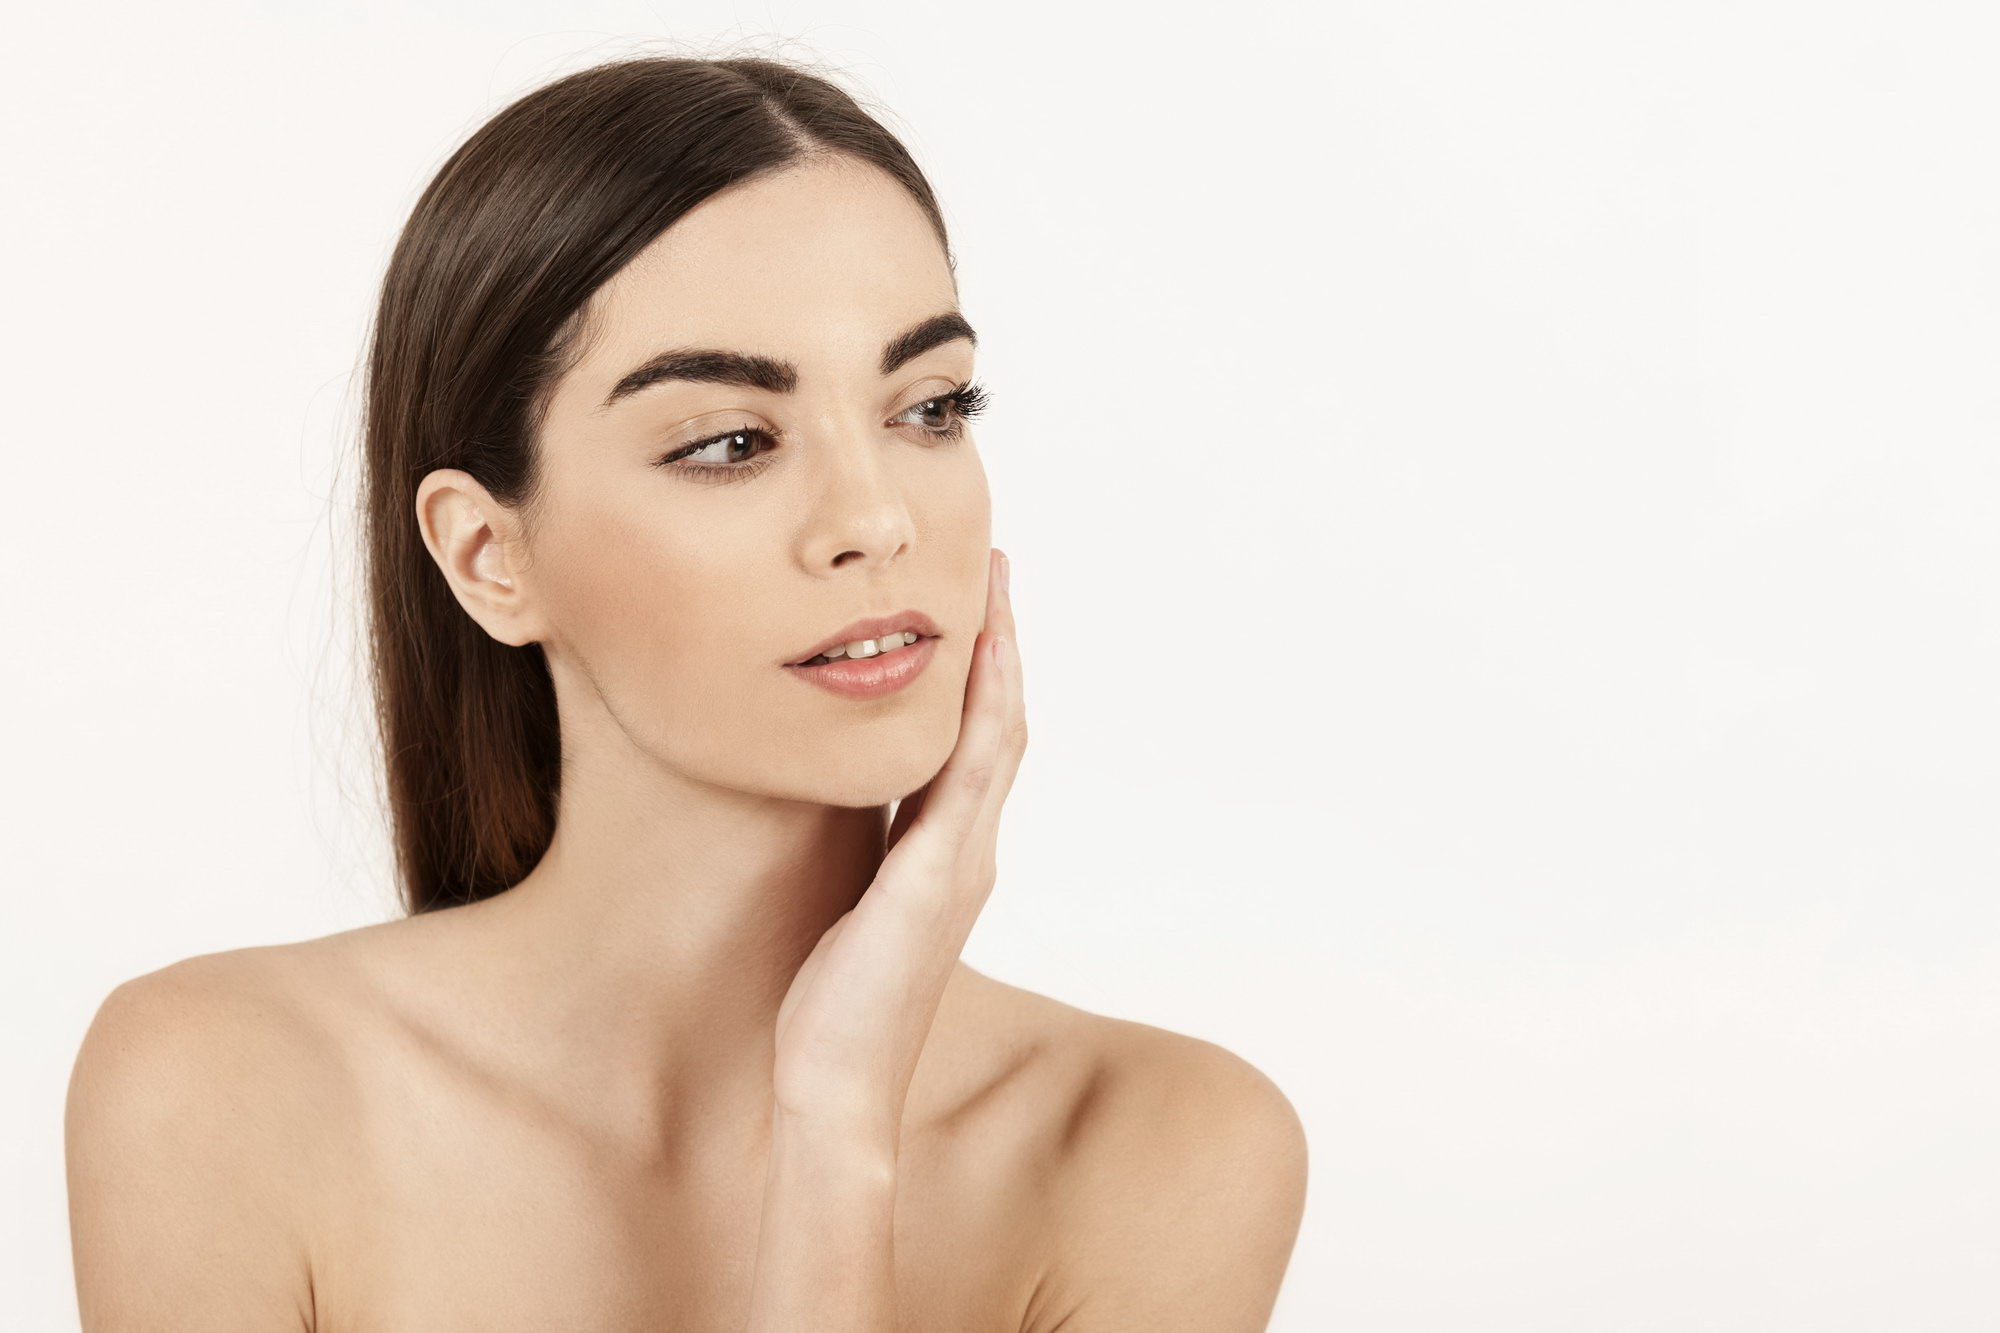 Beauty Works London | Medspa Beauty Clinic - Treatments in Crouch End